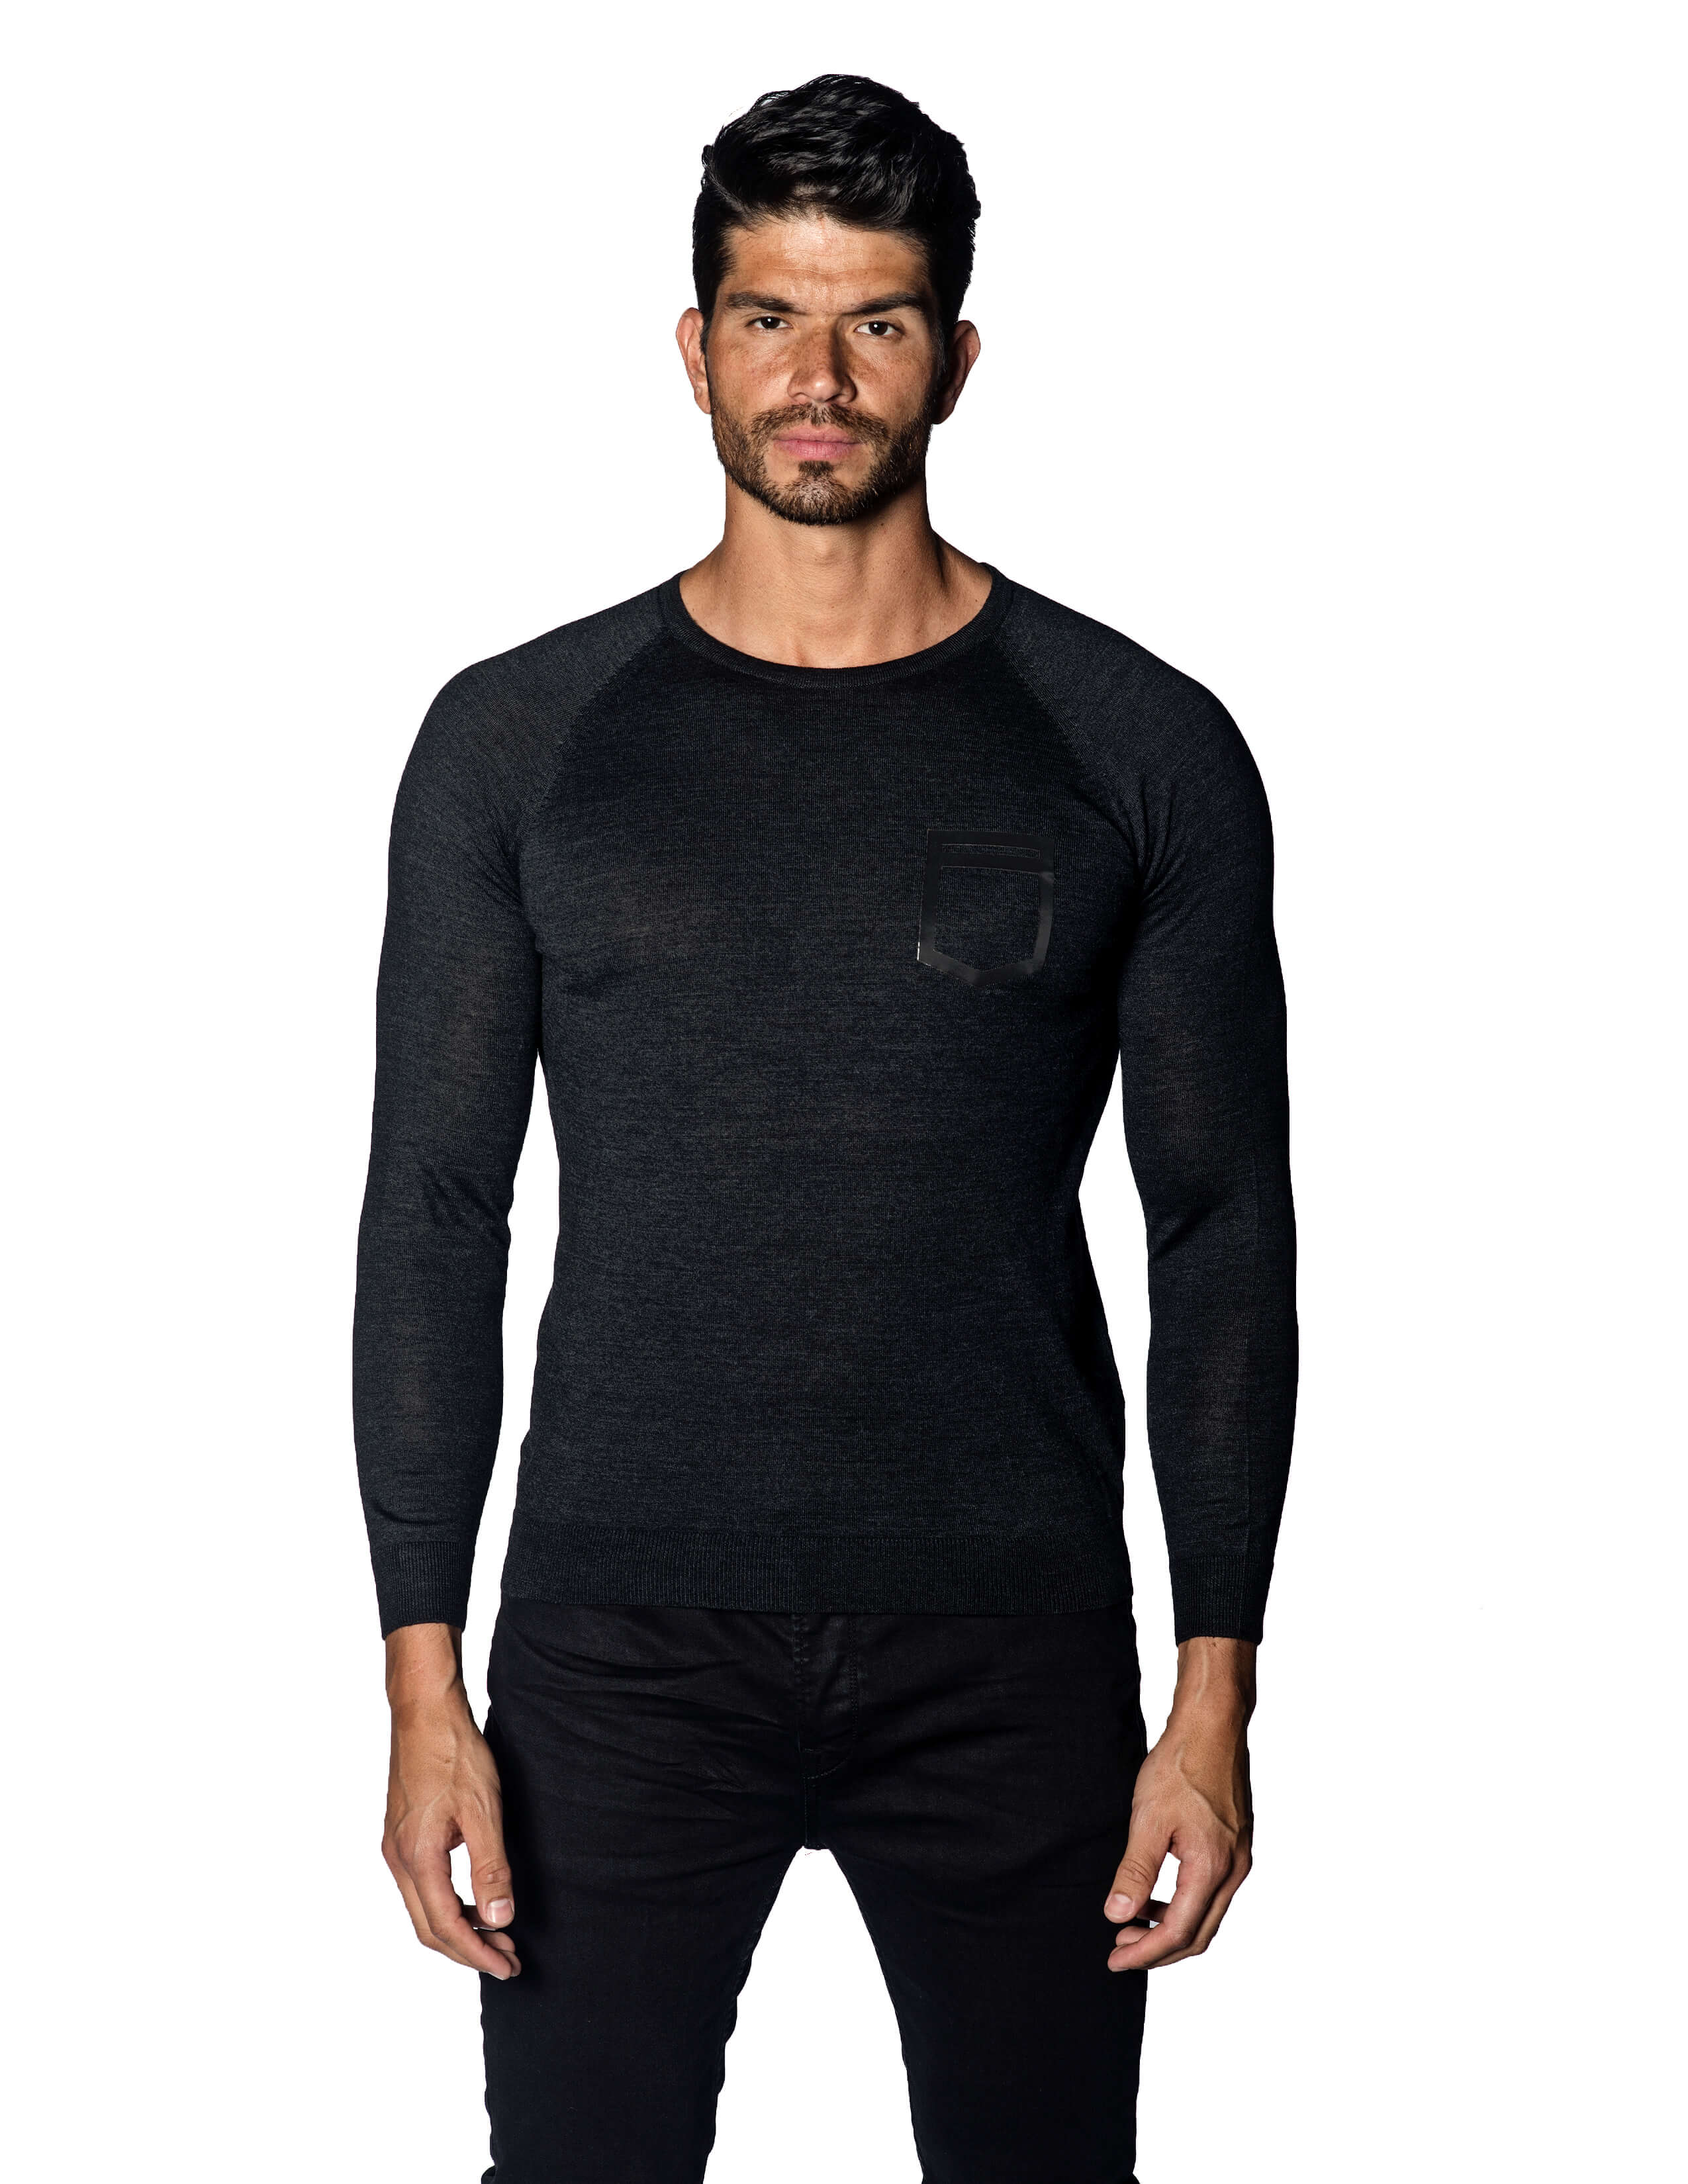 Charcoal Sweater Crew Neck with Faux Pocket for Men 1896-CH - Jared Lang